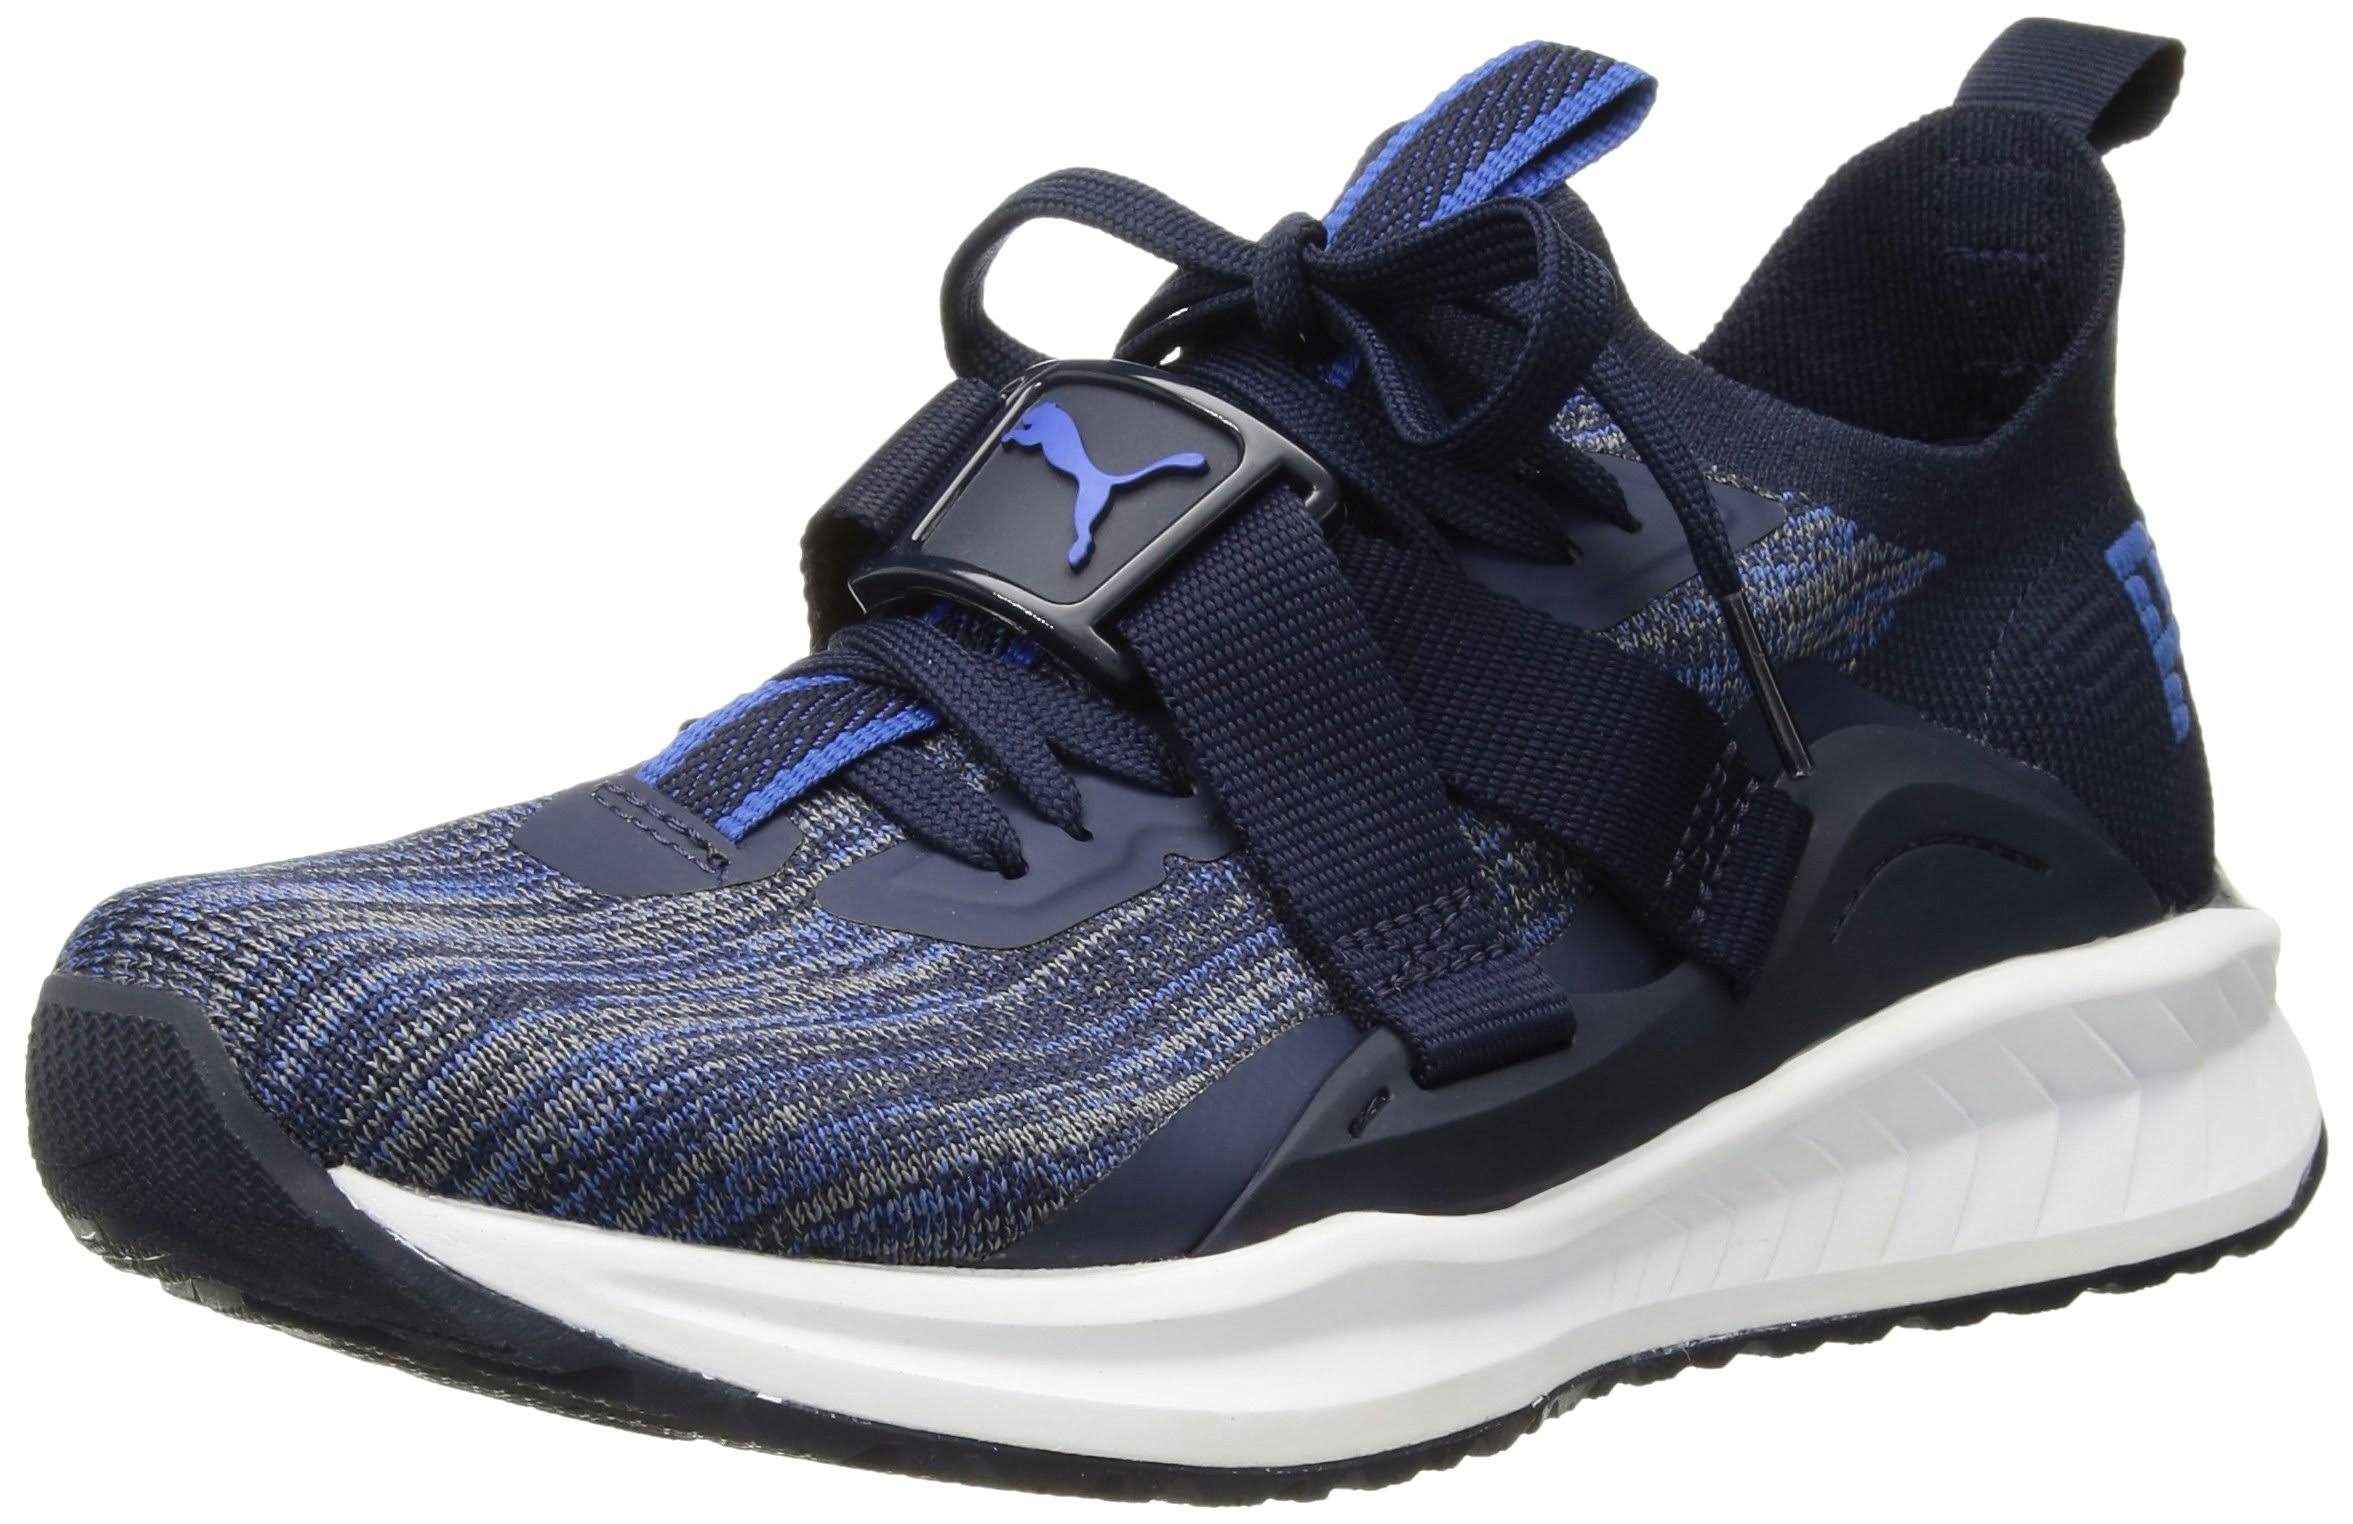 quiet Sneaker 2 Puma turkish Shade Peacoat Evoknit Lo Ignite Hombres Sea OUTwwqaX0